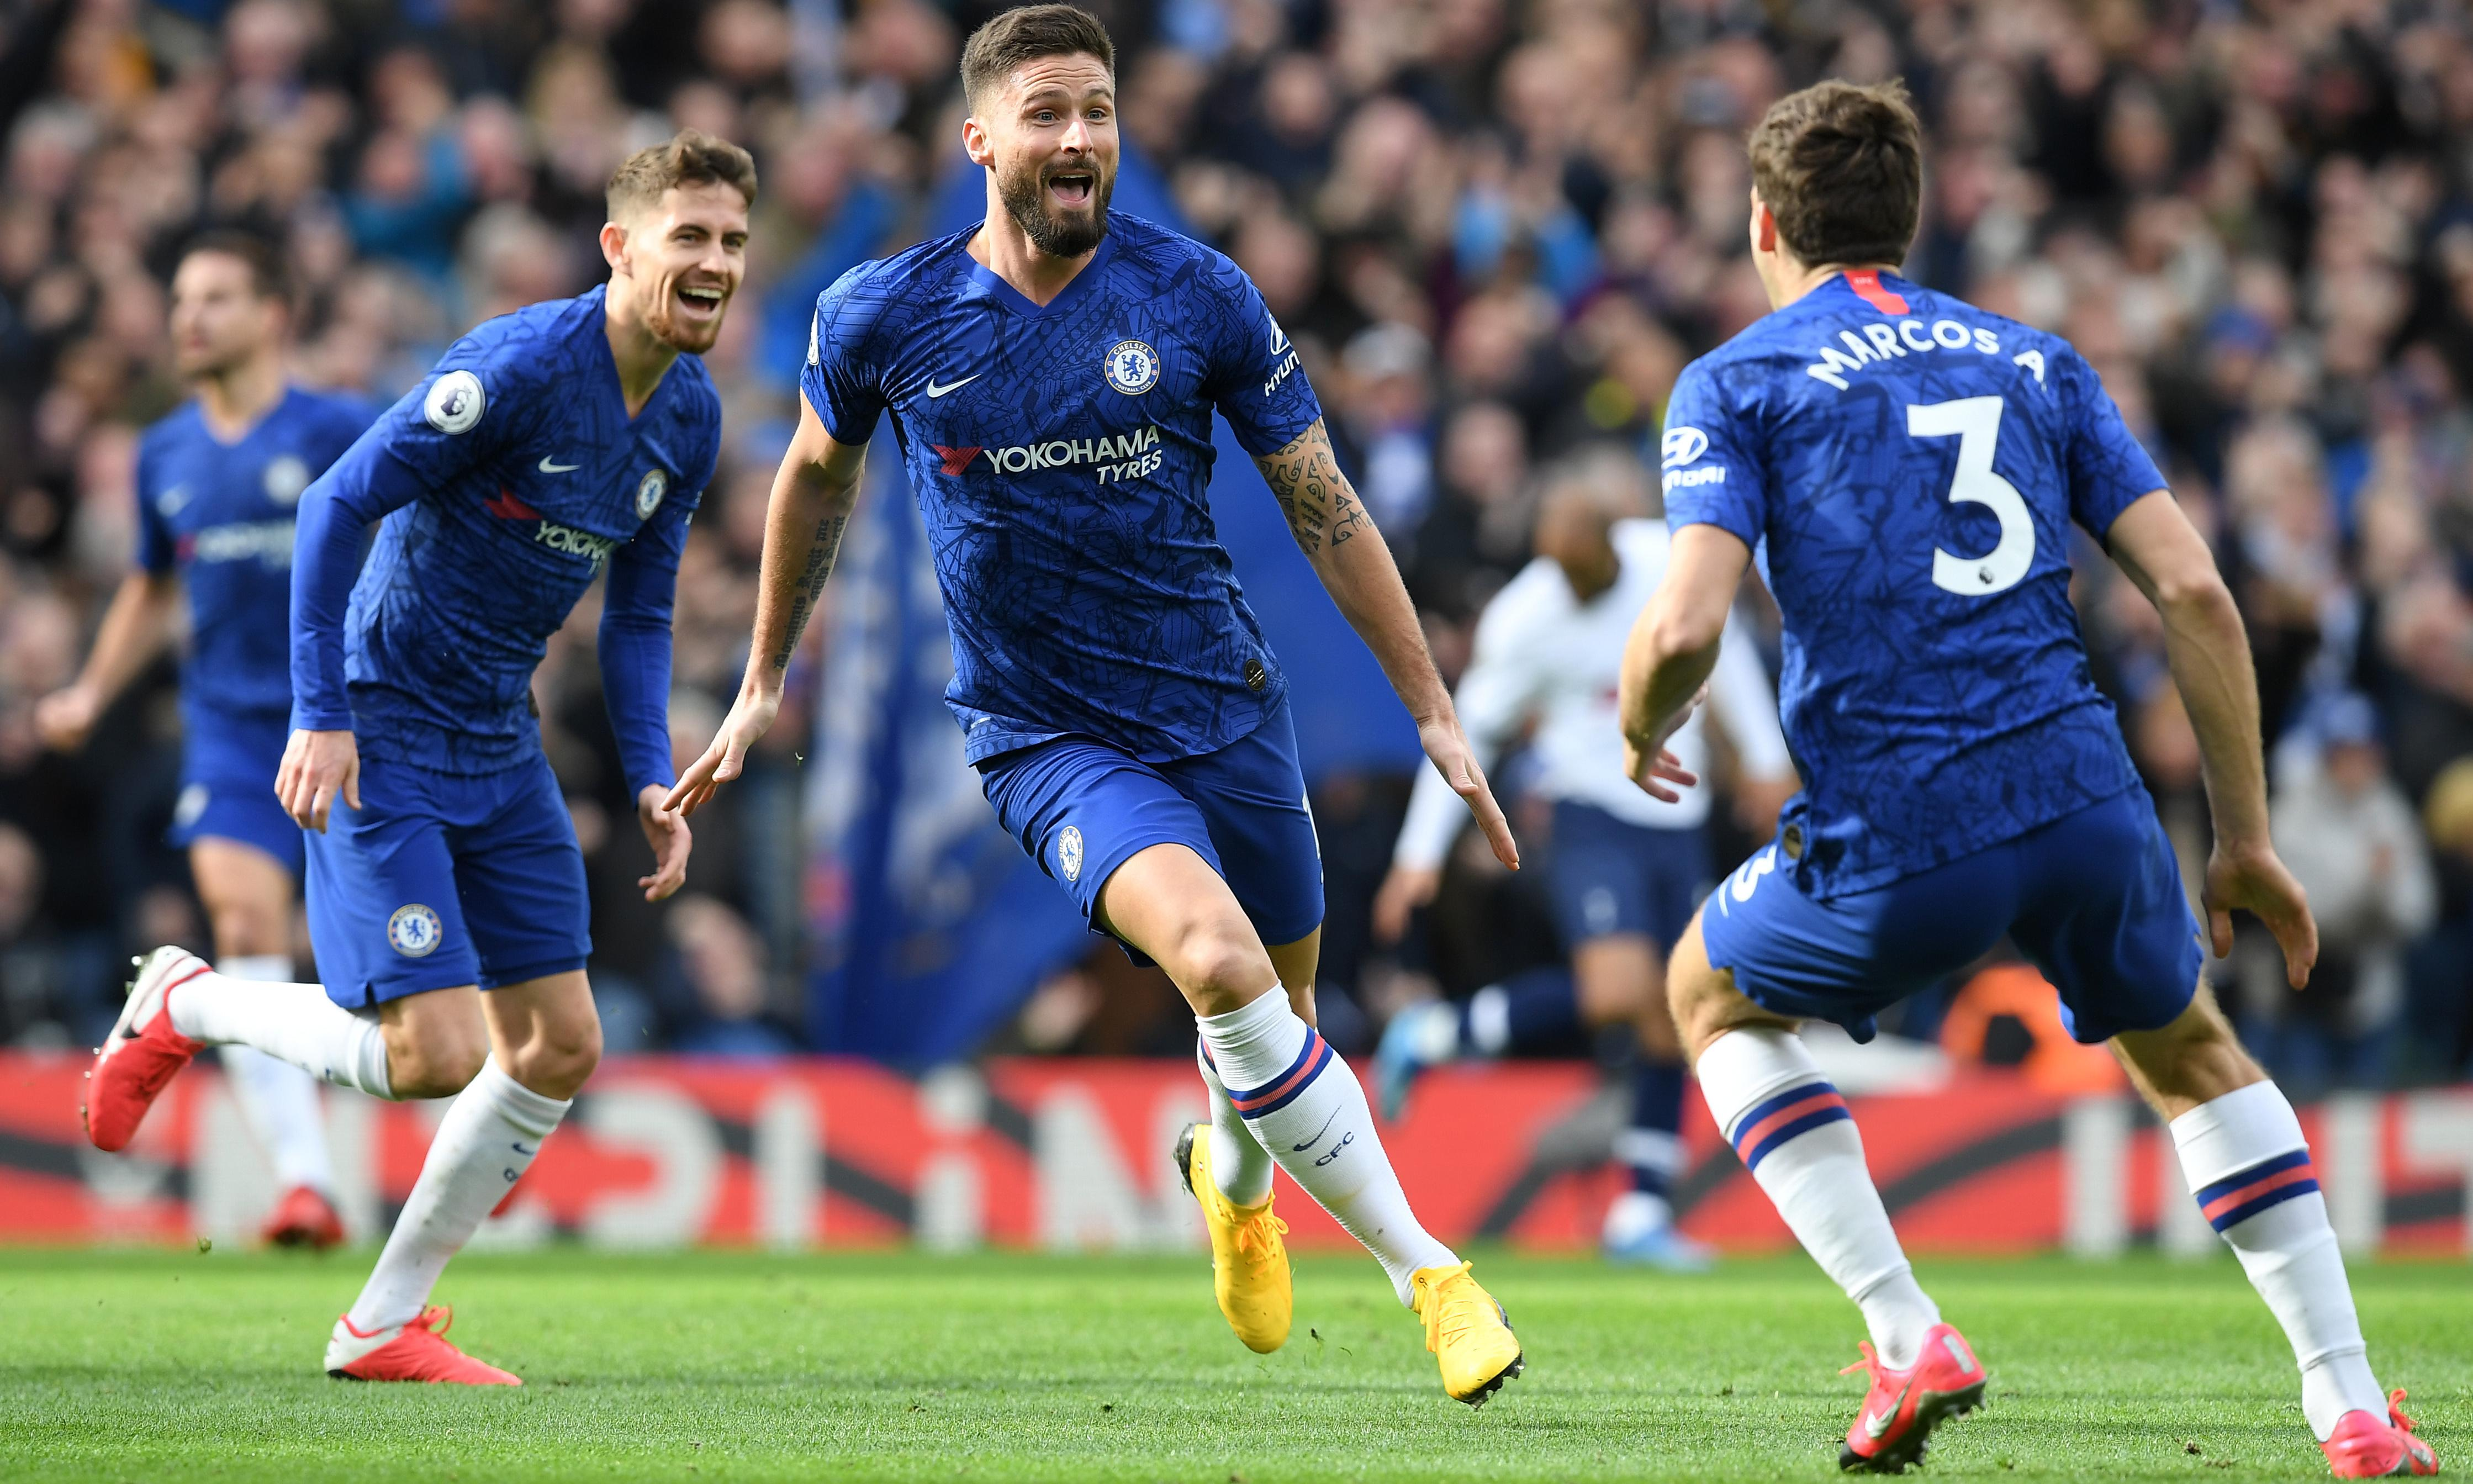 Olivier Giroud ends goal drought with stunner in Chelsea's victory over Spurs